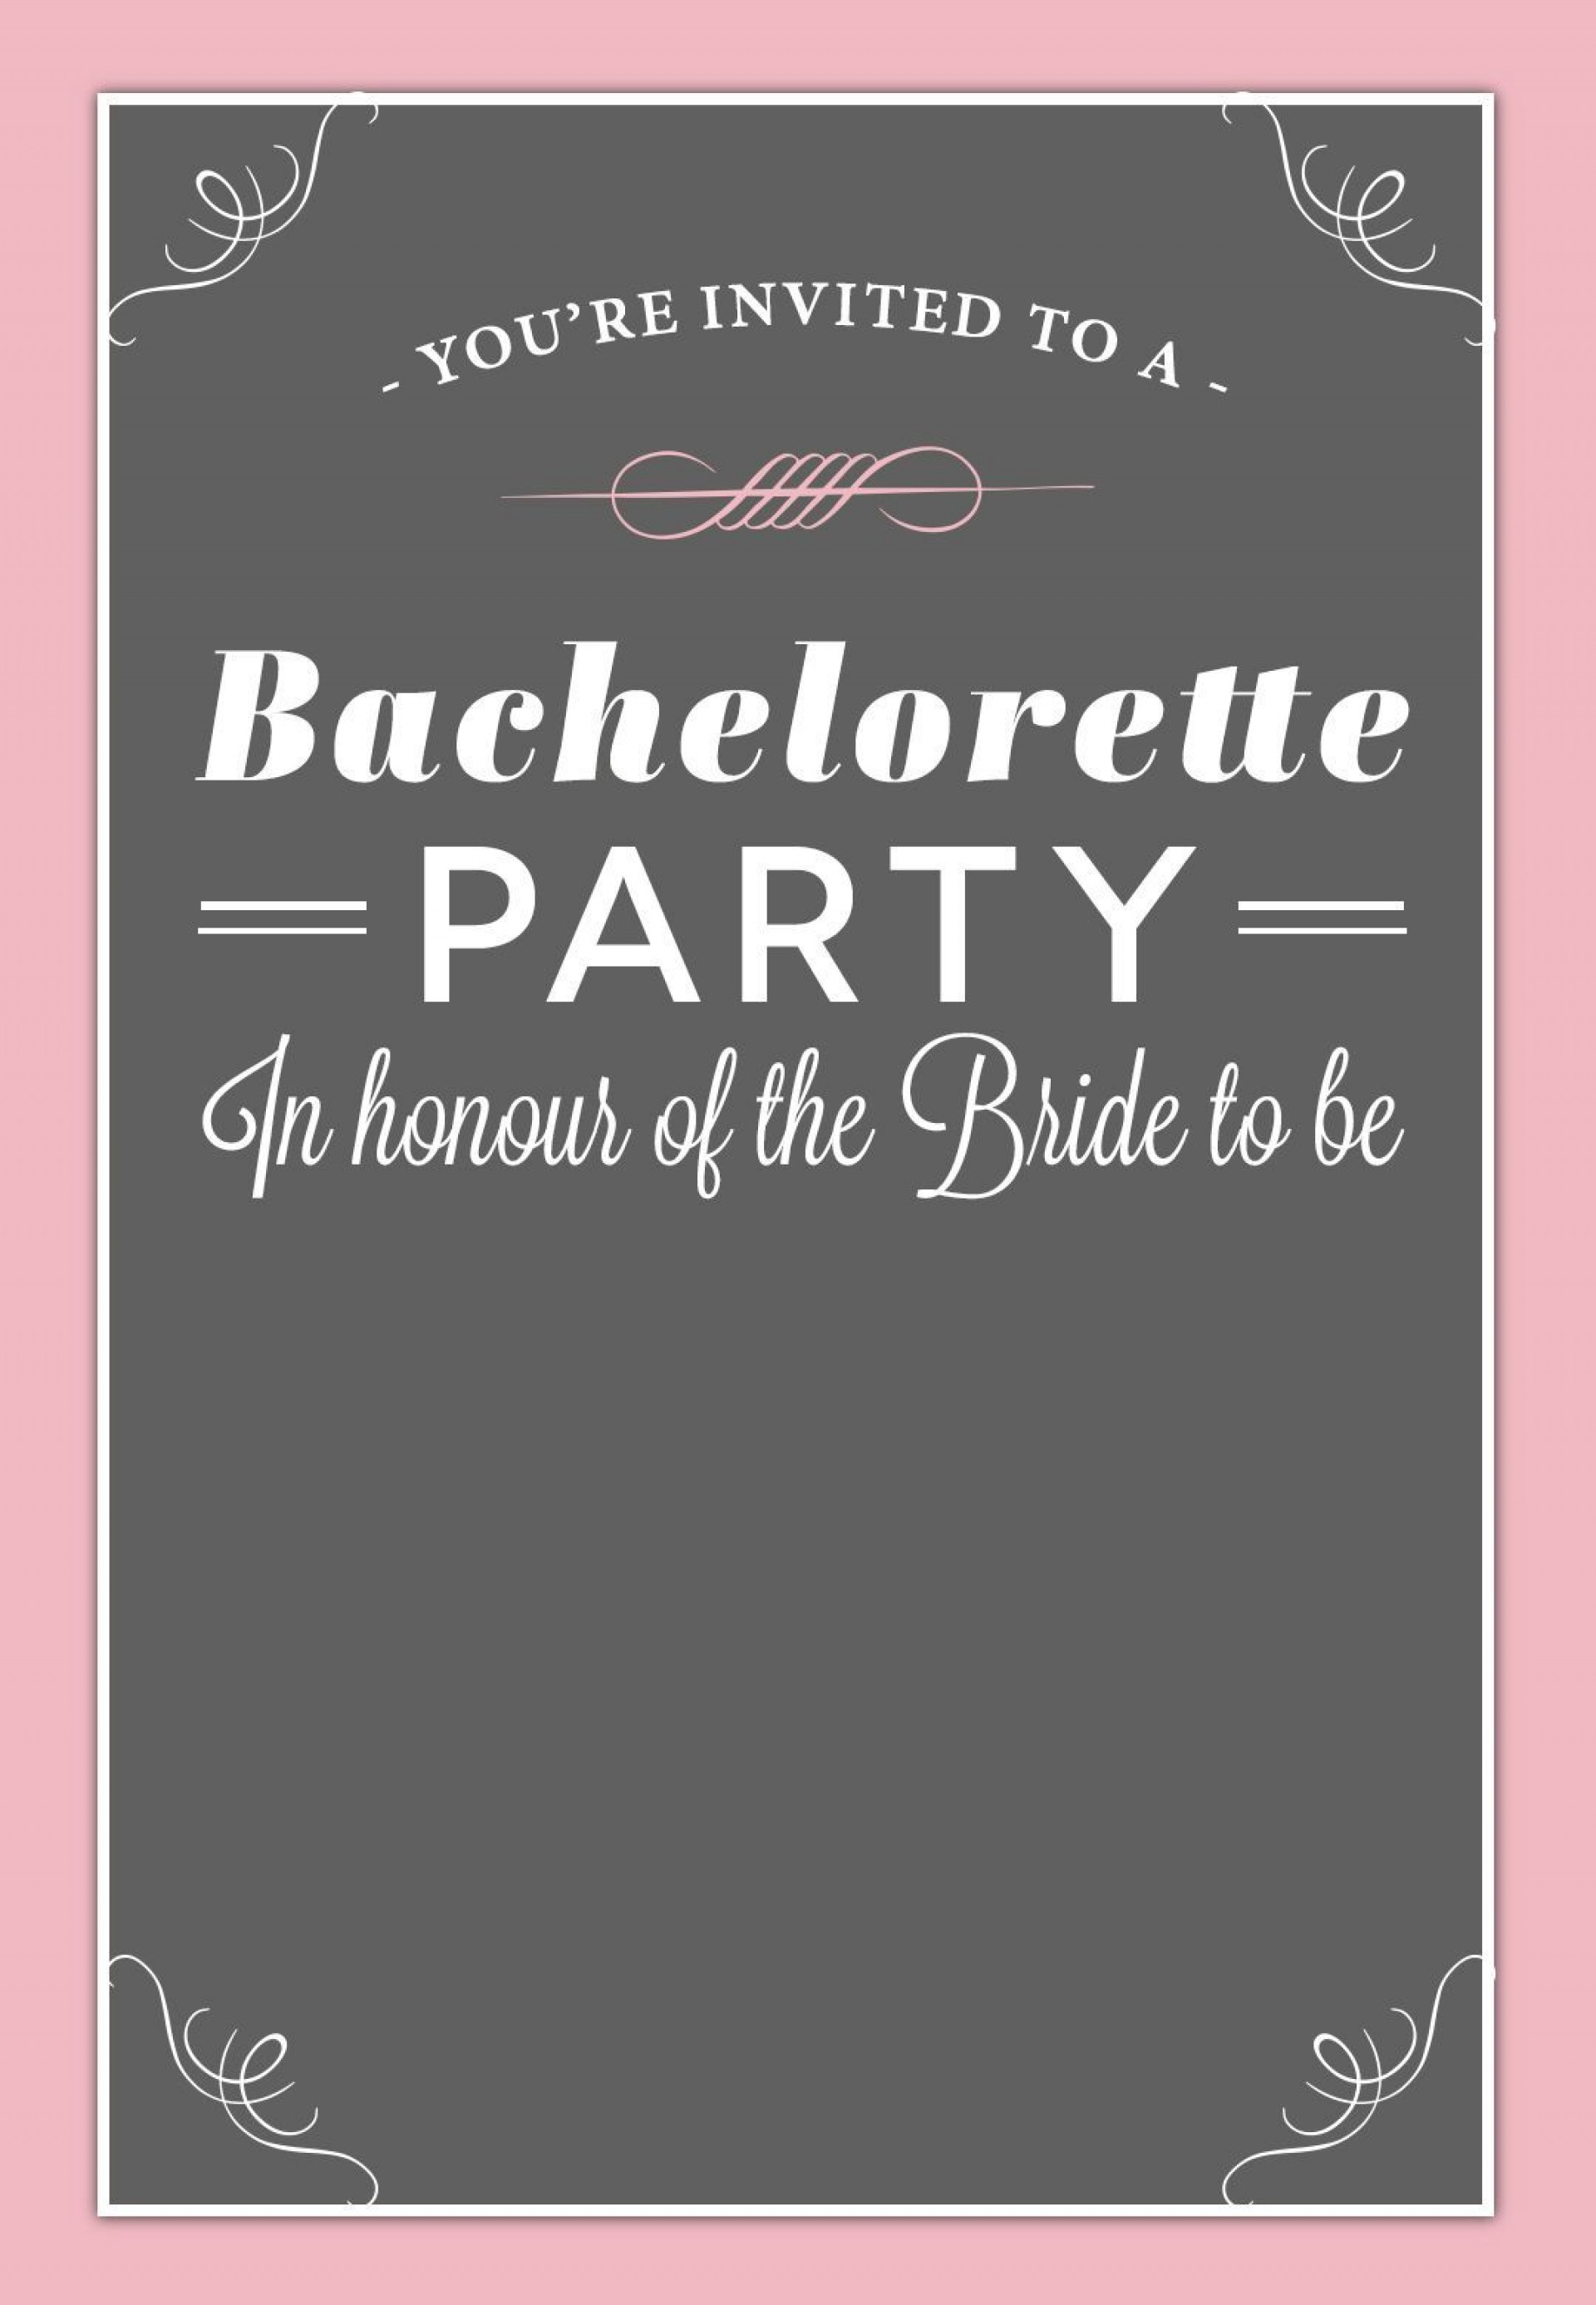 002 Best Bachelorette Party Invitation Template Word Free Design 1920